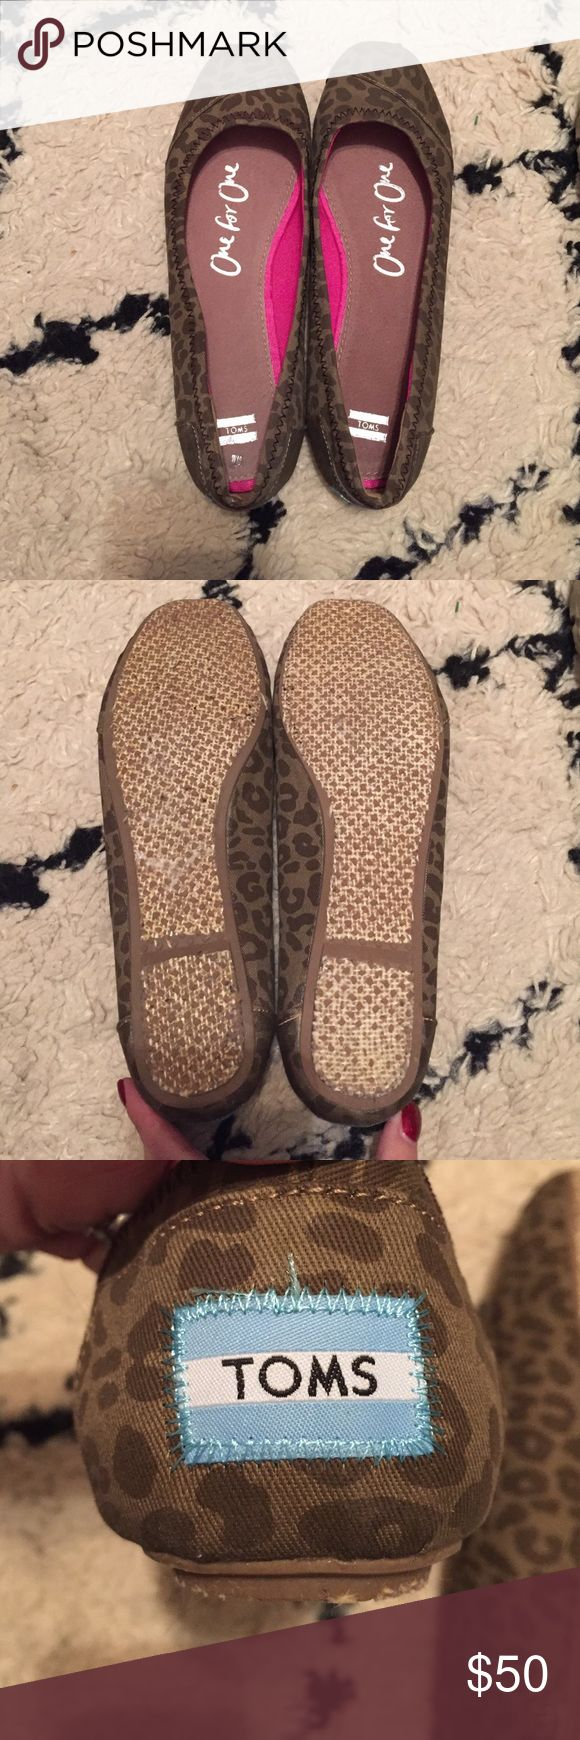 Toms brown leopard print ballet flats Toms brown leopard print ballet flats. Size 8. Excellent condition. Worn once. TOMS Shoes Flats & Loafers